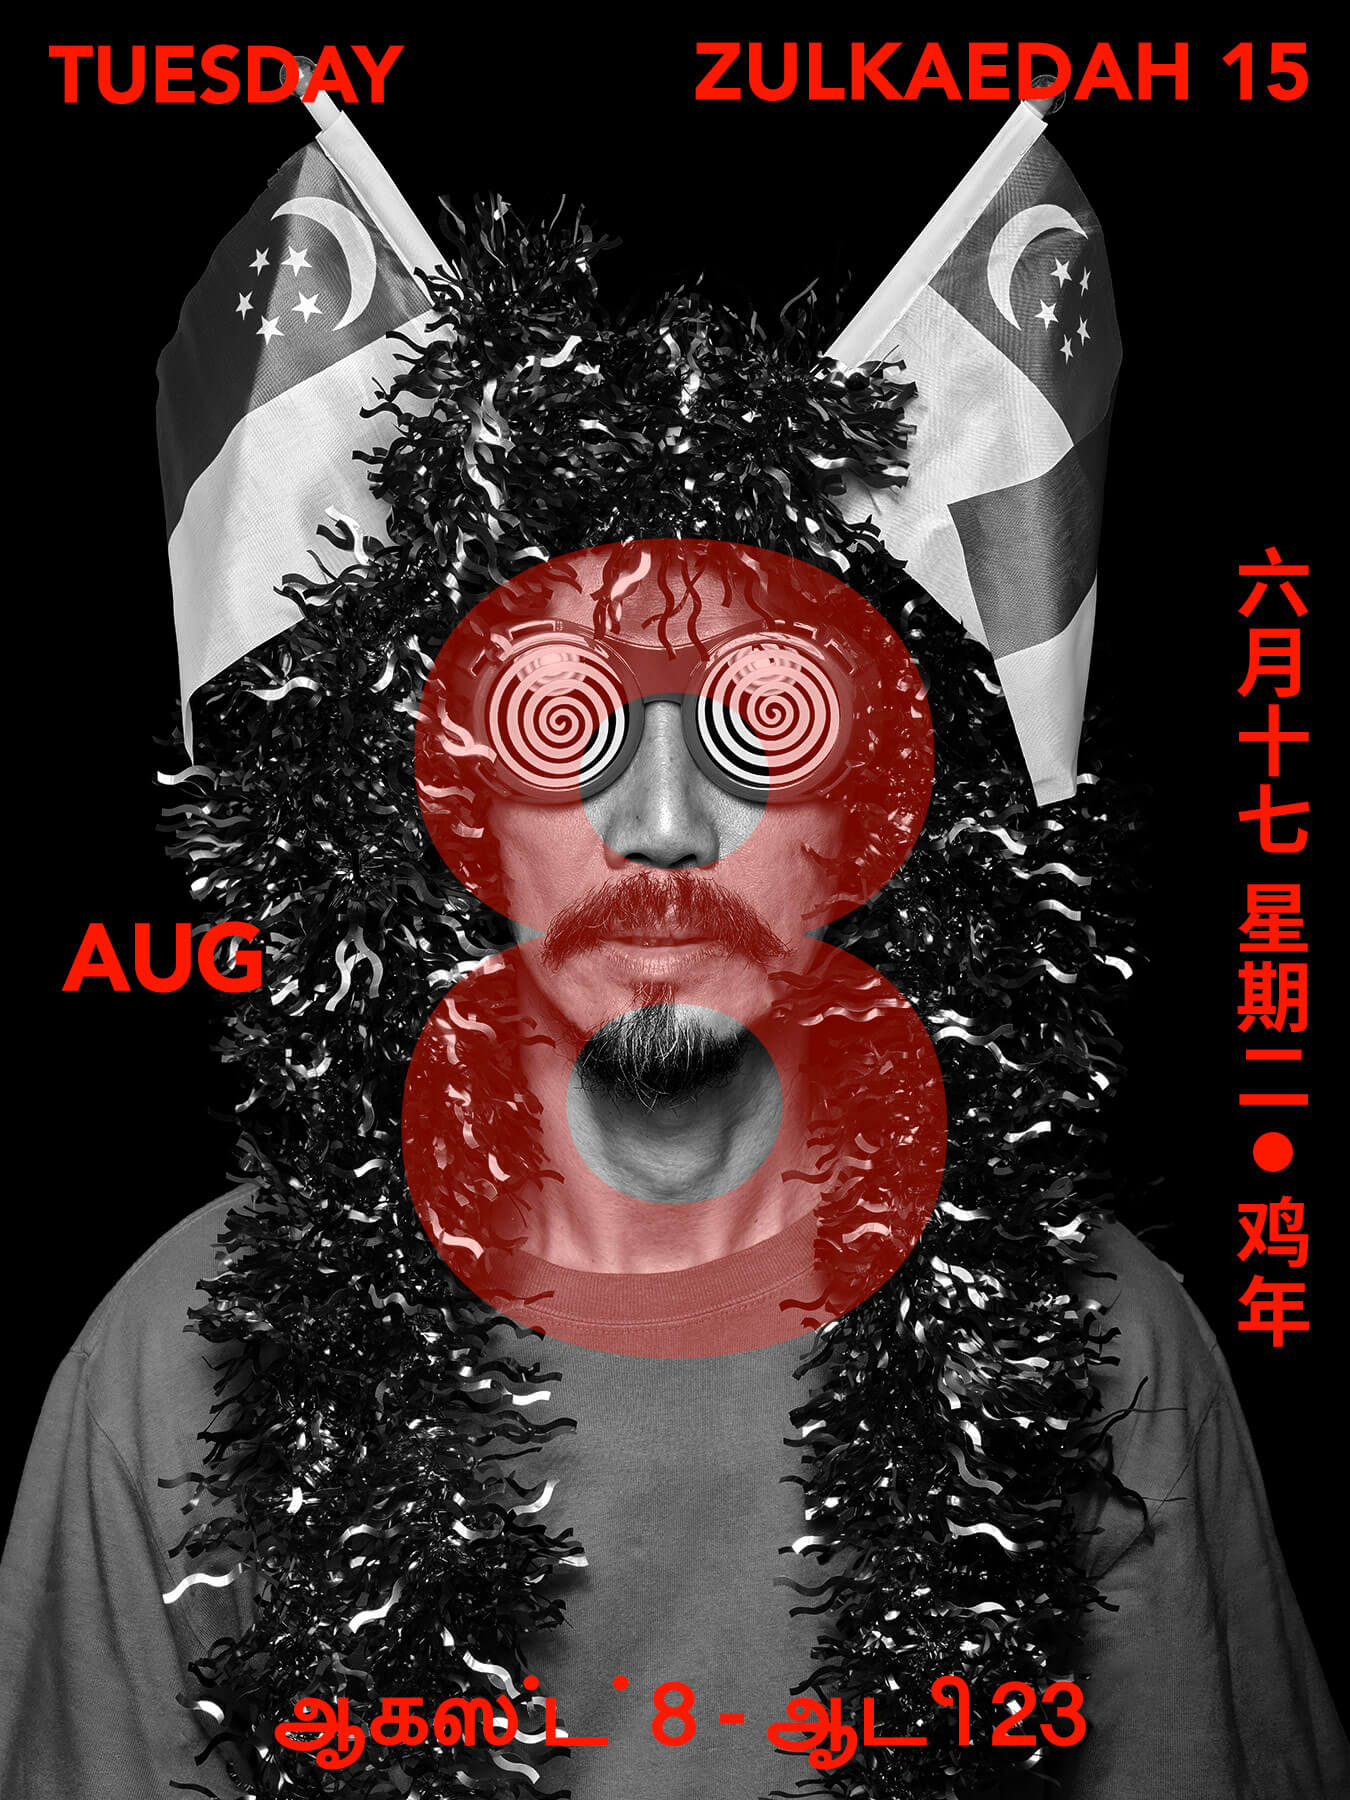 8 Aug 2017 Derong is wearing party shades and has 2 Singapore flags as head gear